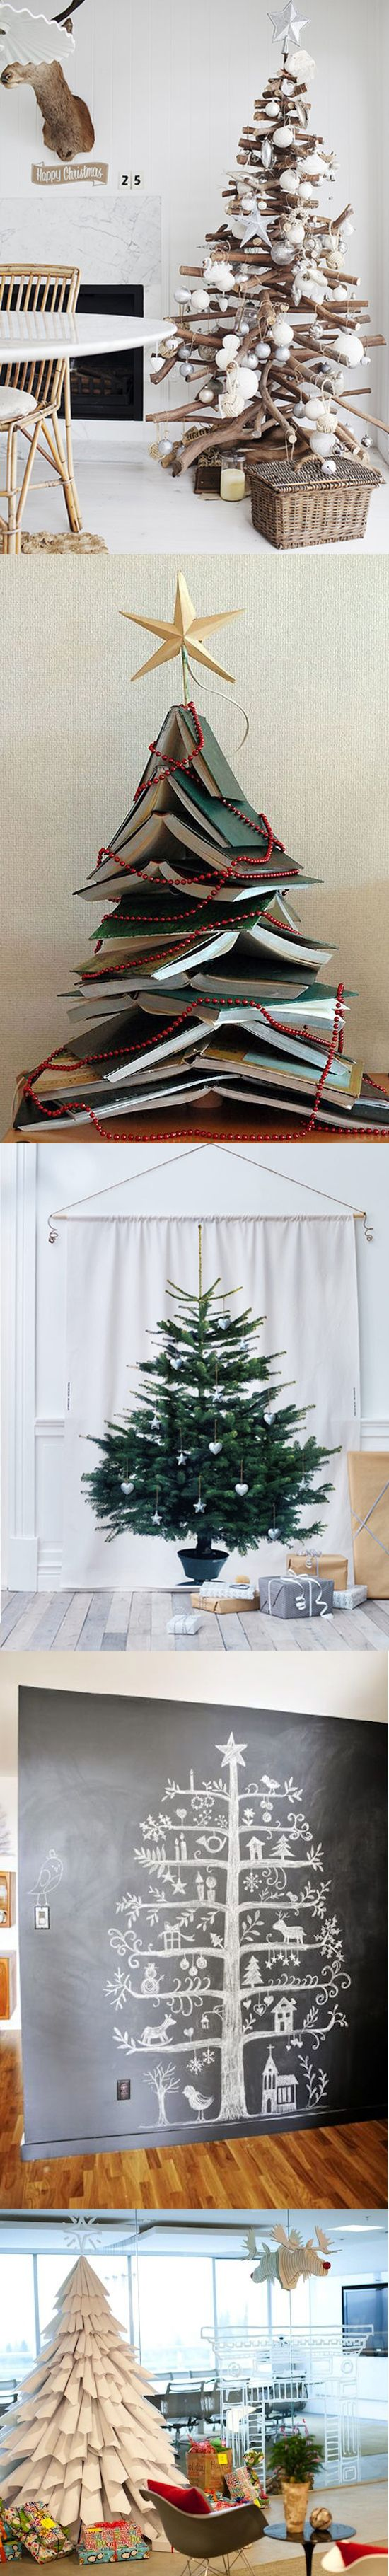 5 Christmas Trees You Don't Have to Water! Good ideas for people who don't have the space for a tree